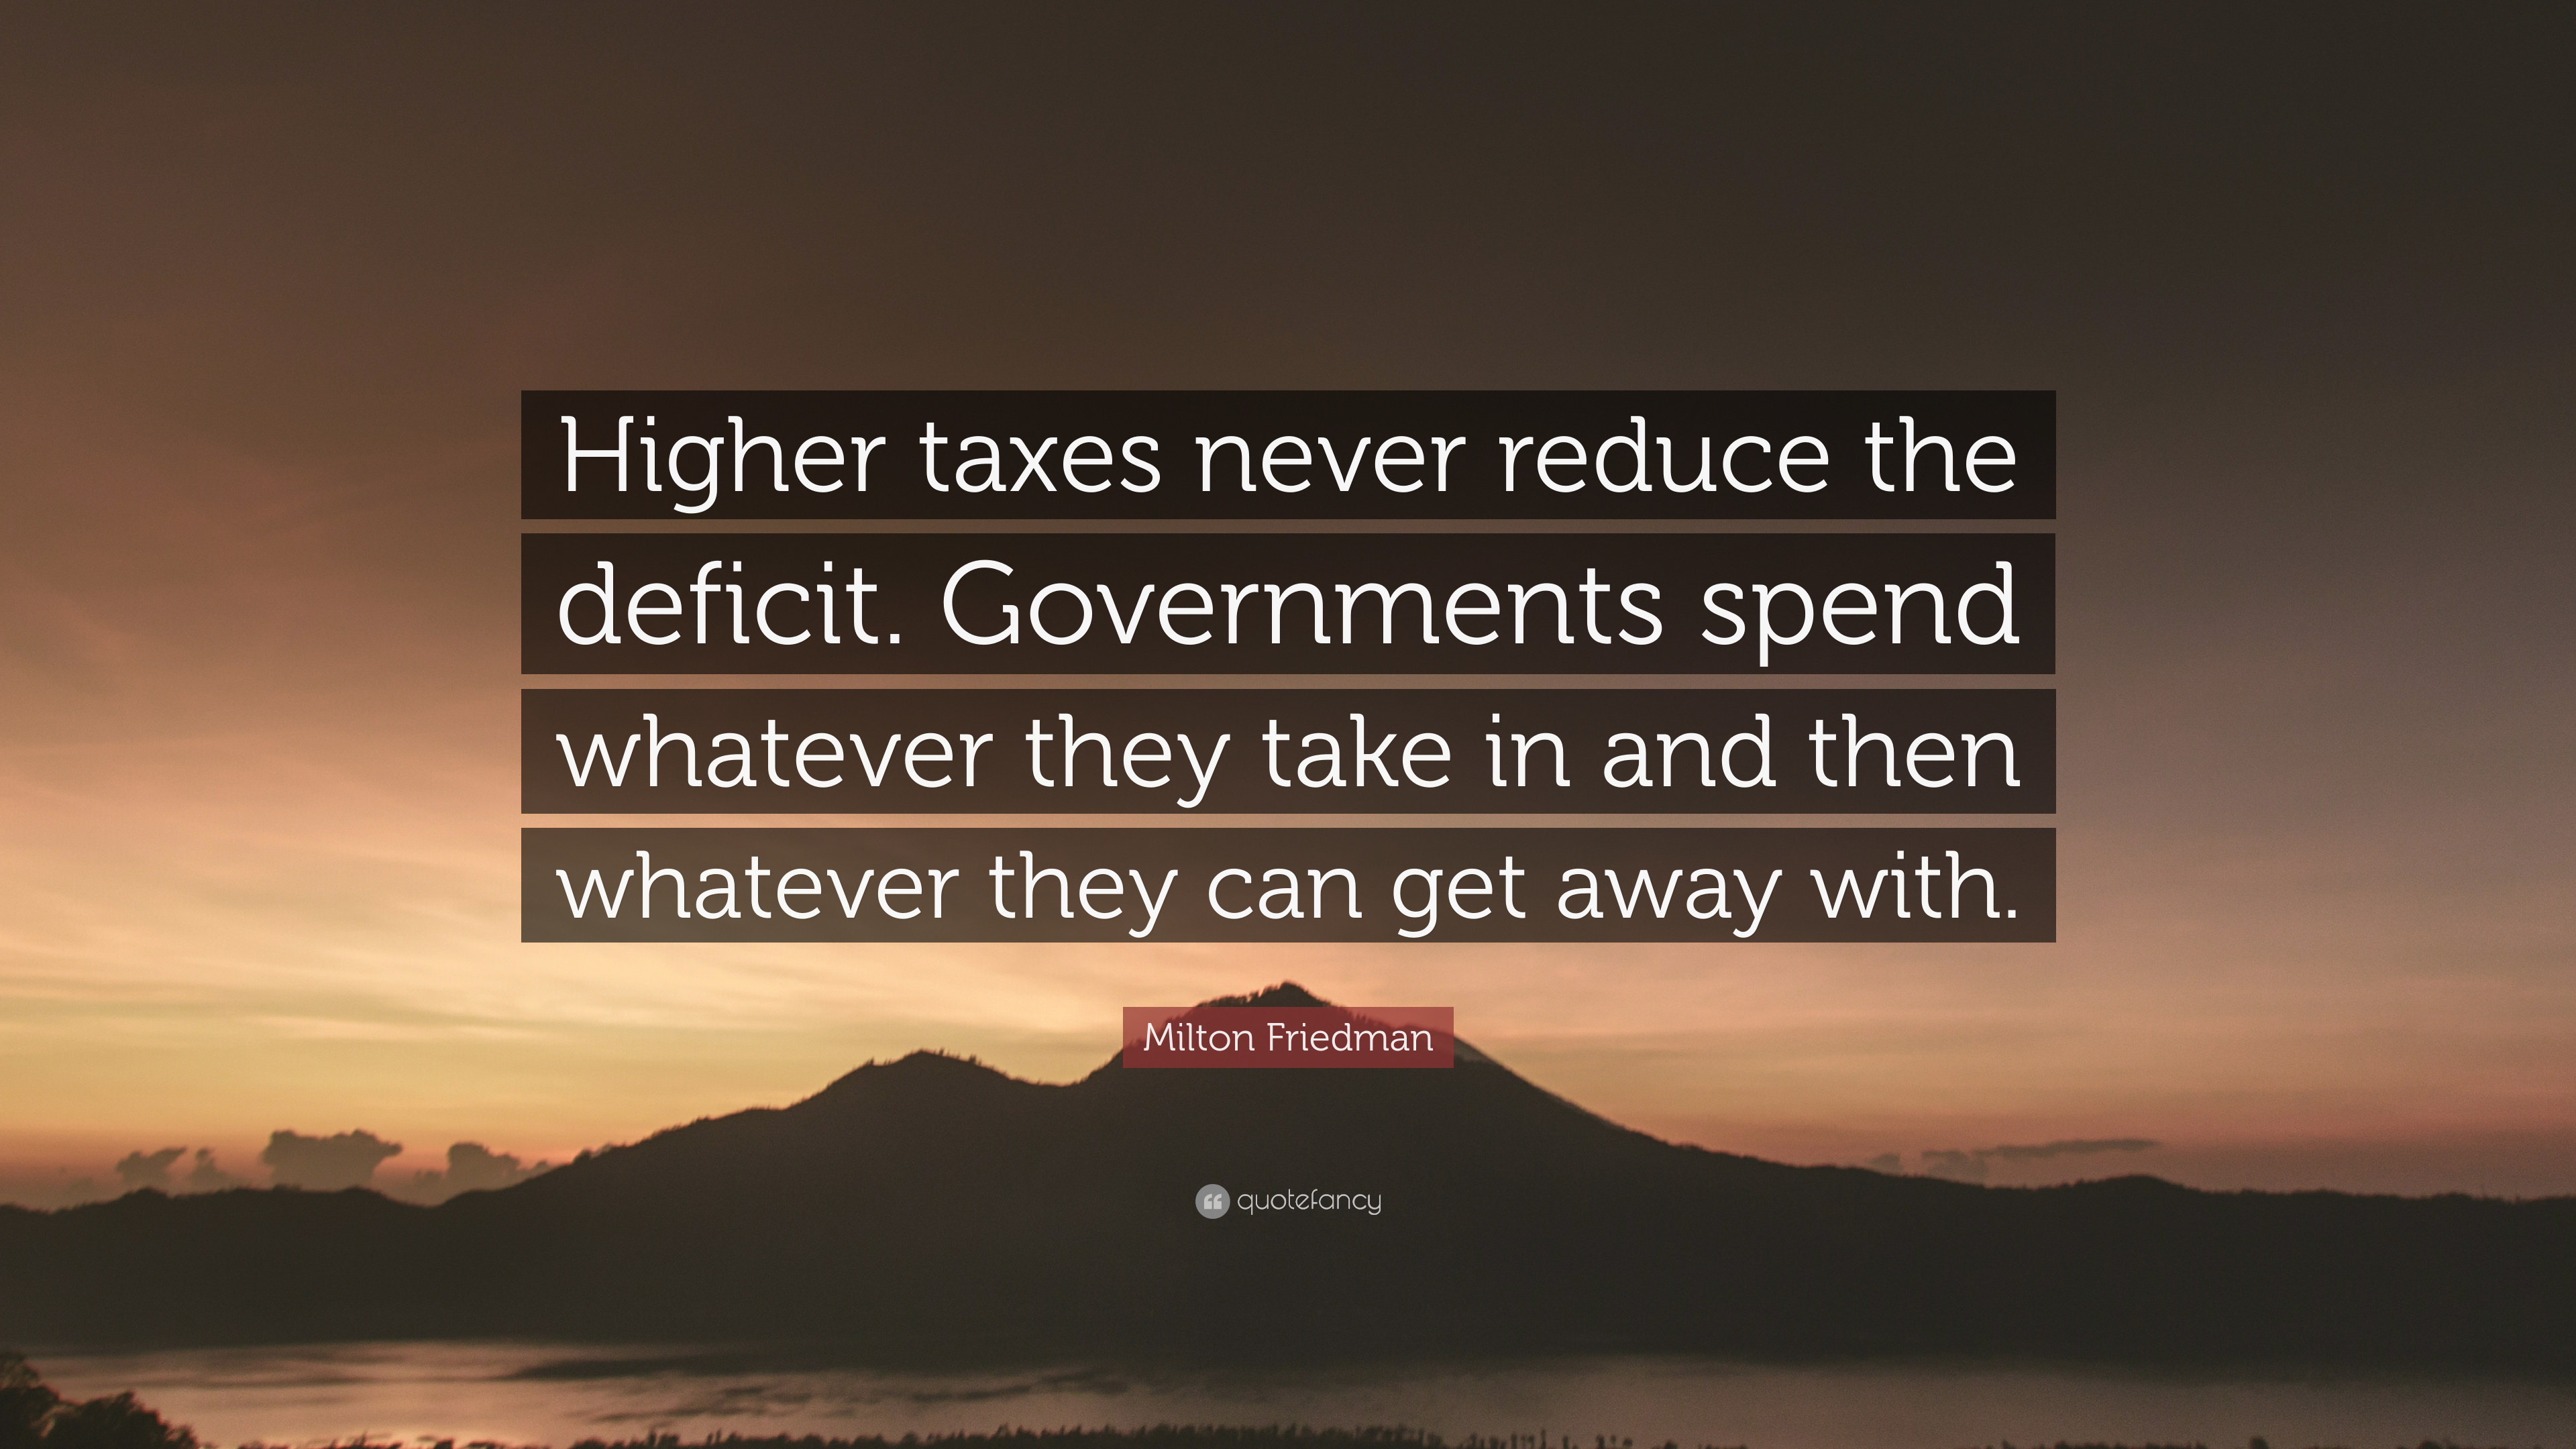 Milton Friedman Quotes | Milton Friedman Quote Higher Taxes Never Reduce The Deficit